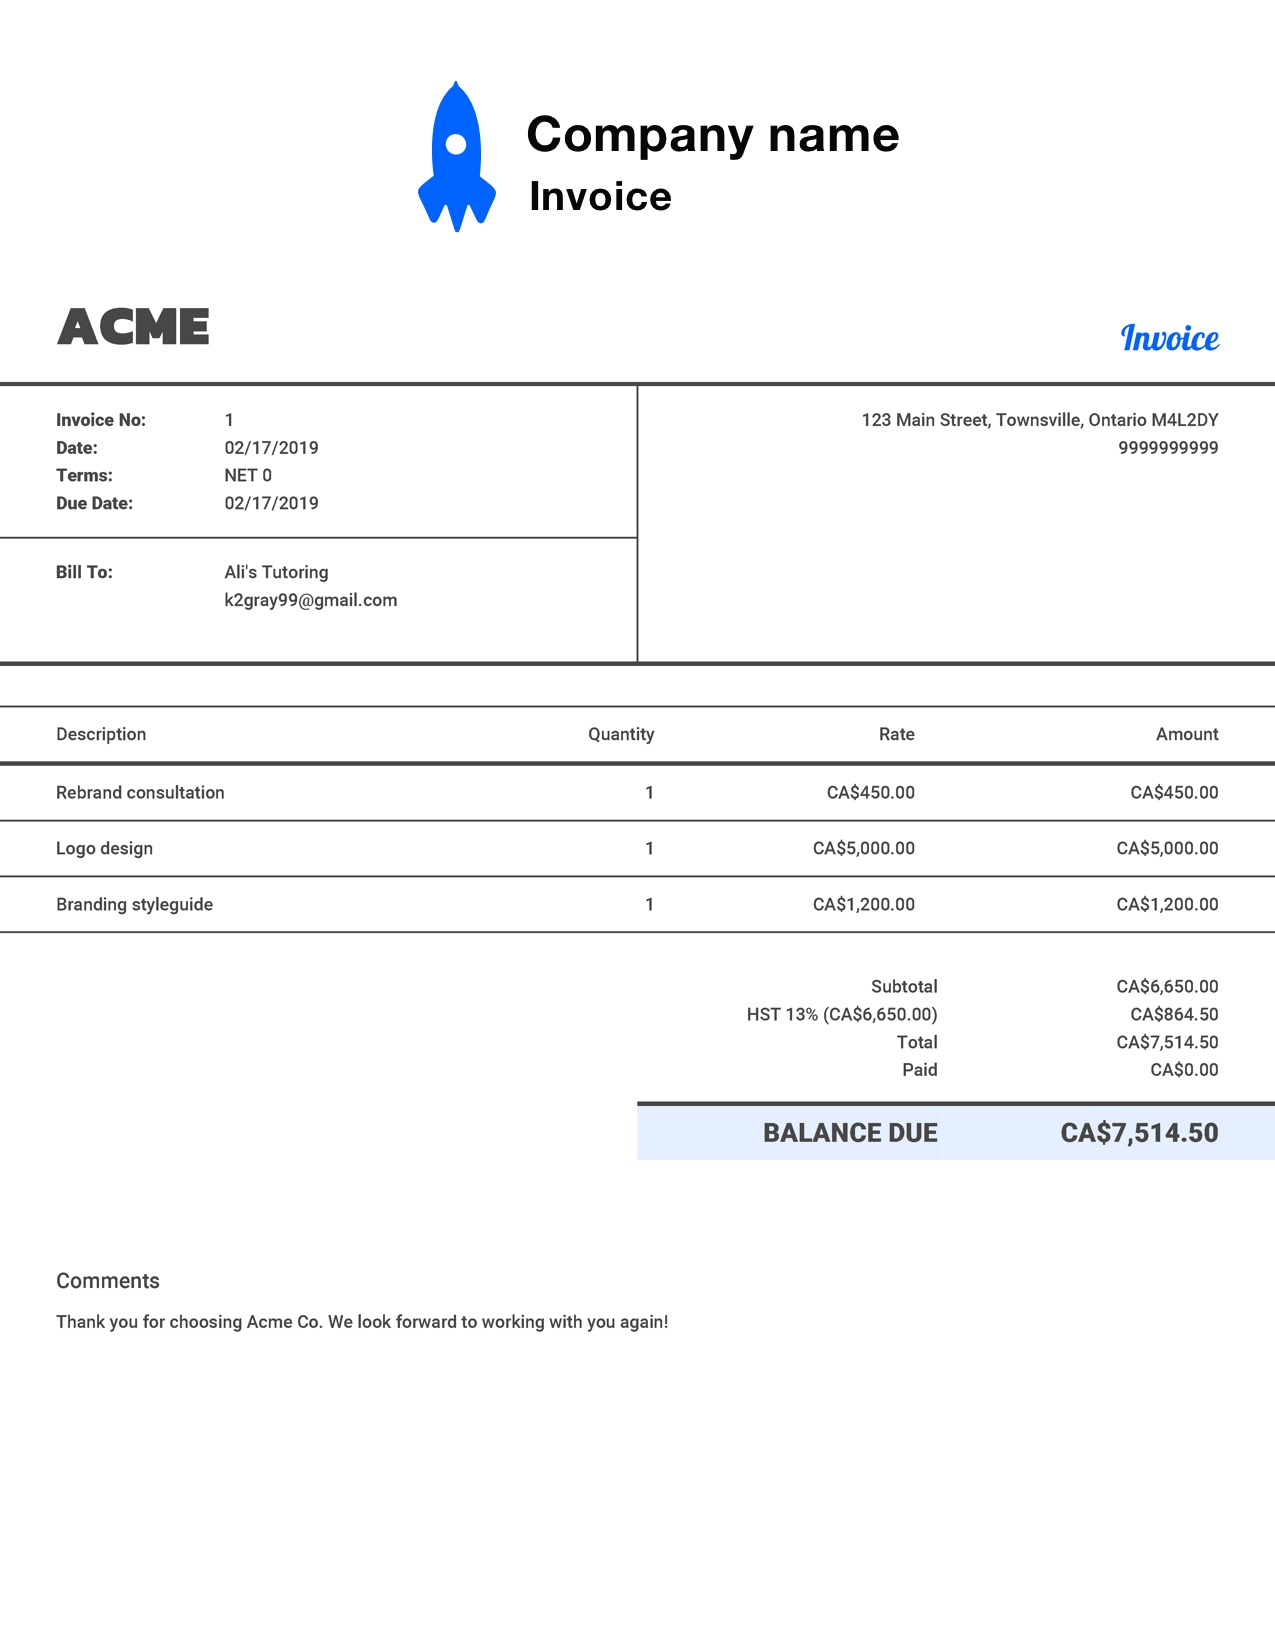 The Best Invoice Templates For The Uk 2020 Reviews